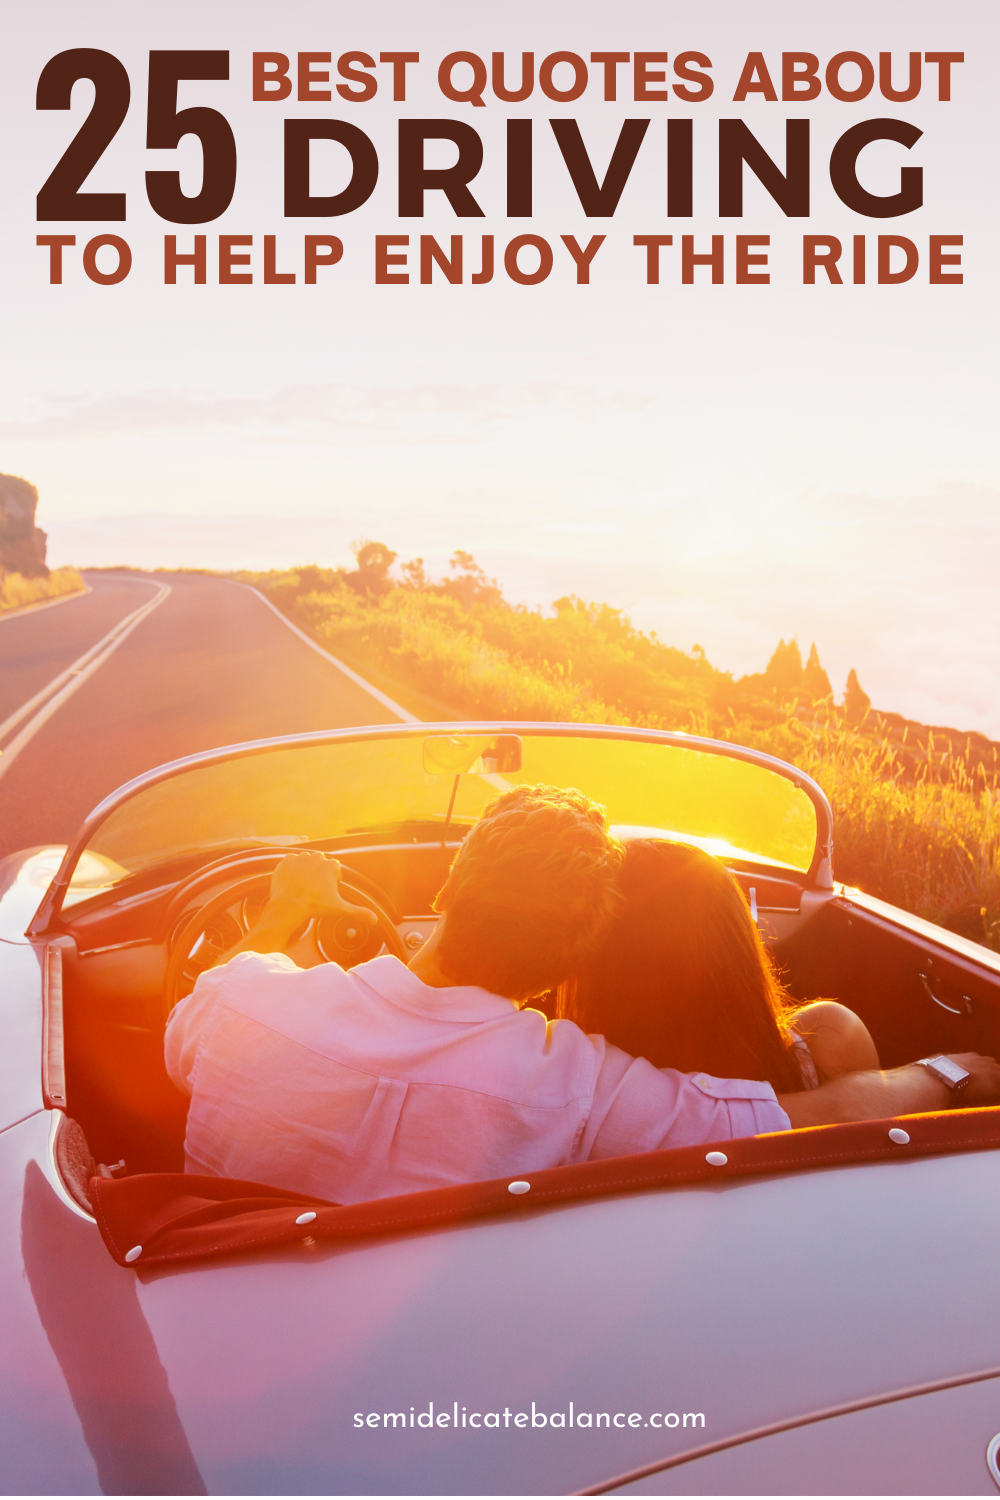 Best Quotes About Driving To Help You Enjoy The Ride